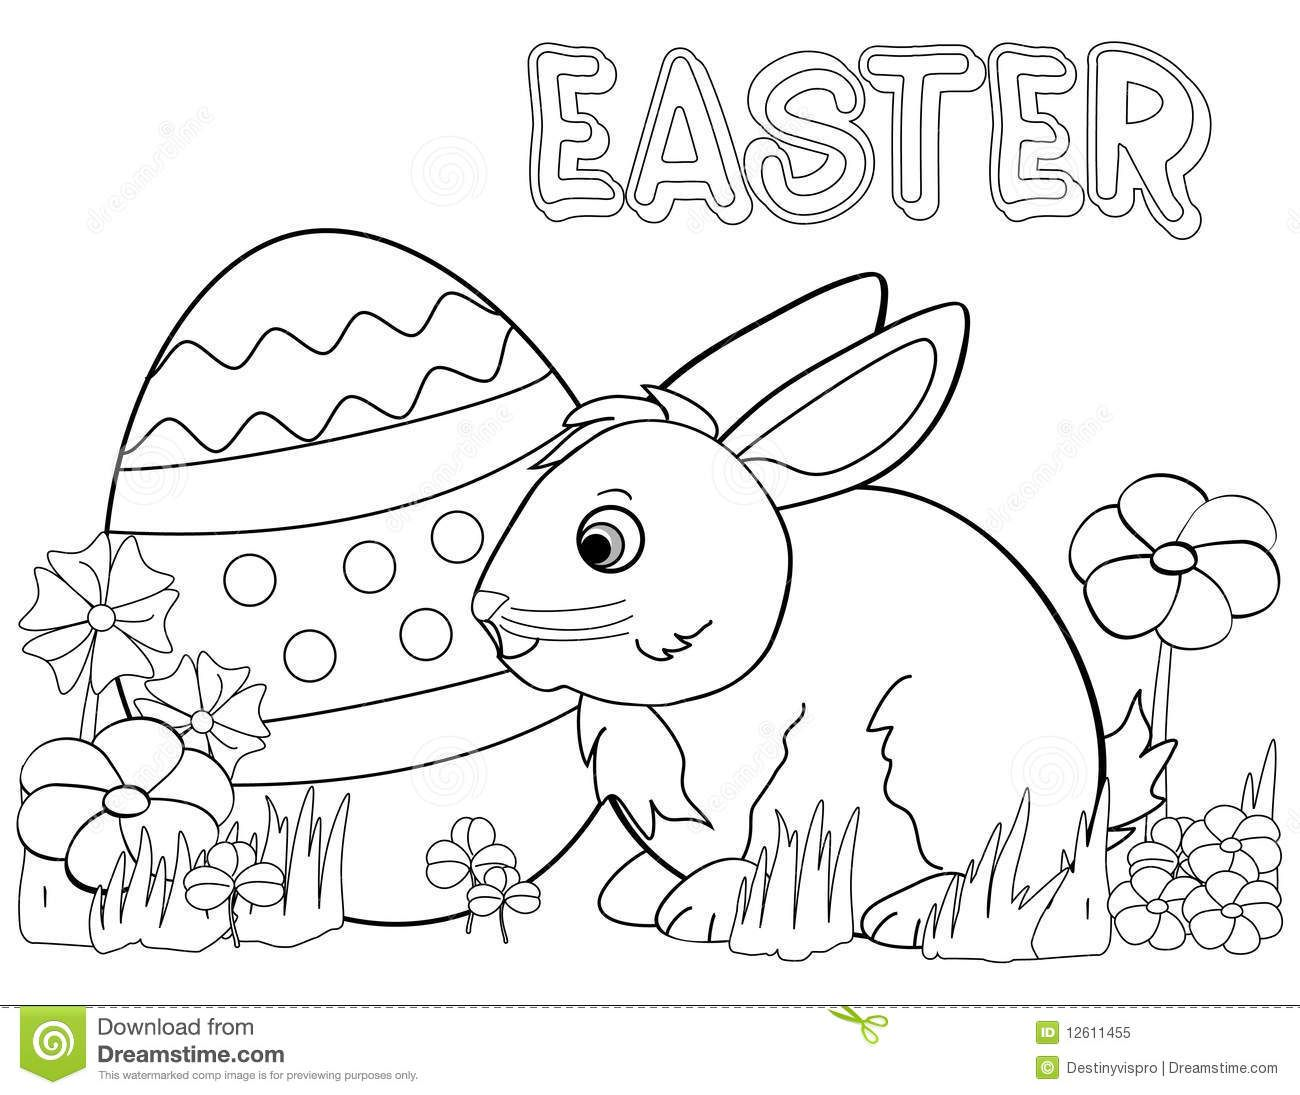 Easter Rabbit Coloring Pages Free. Free printable Easter Bunny coloring page for toddlers  preschool or kindergarten children Enjoy this Happy easter bunny pages Google Search Pinterest